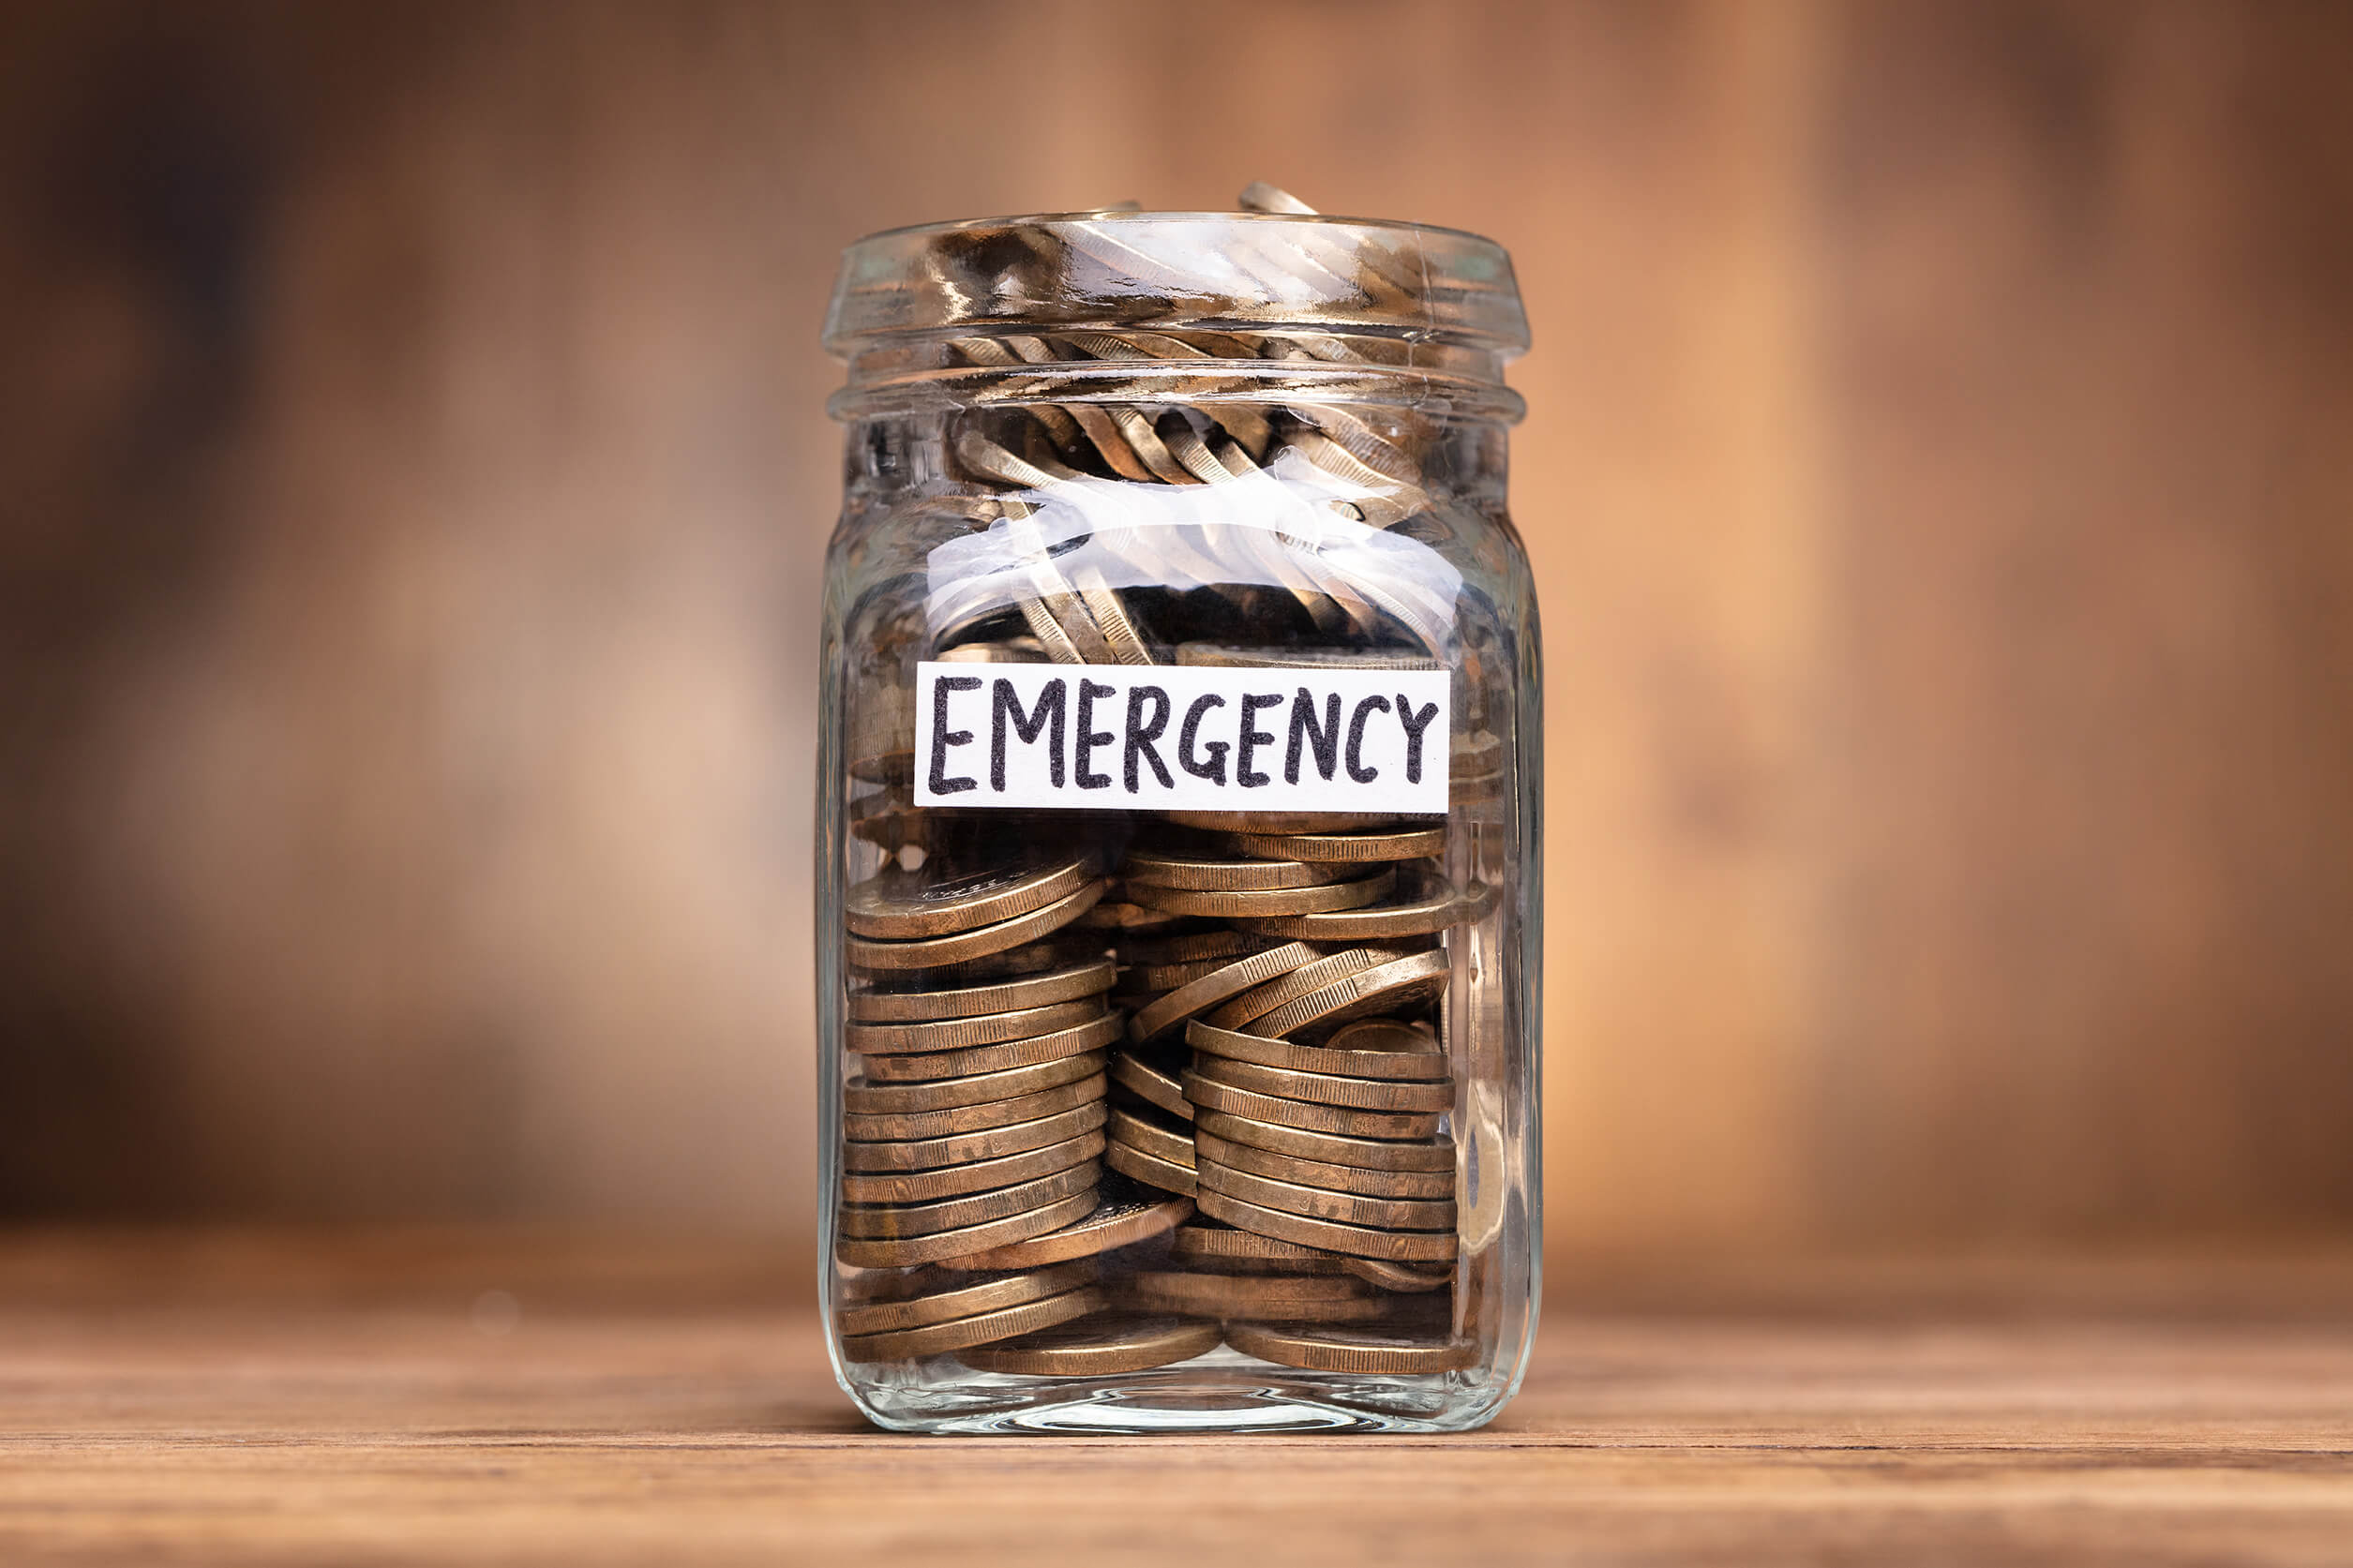 Contingency Funds for Emergencies: Here's How to Build Yours